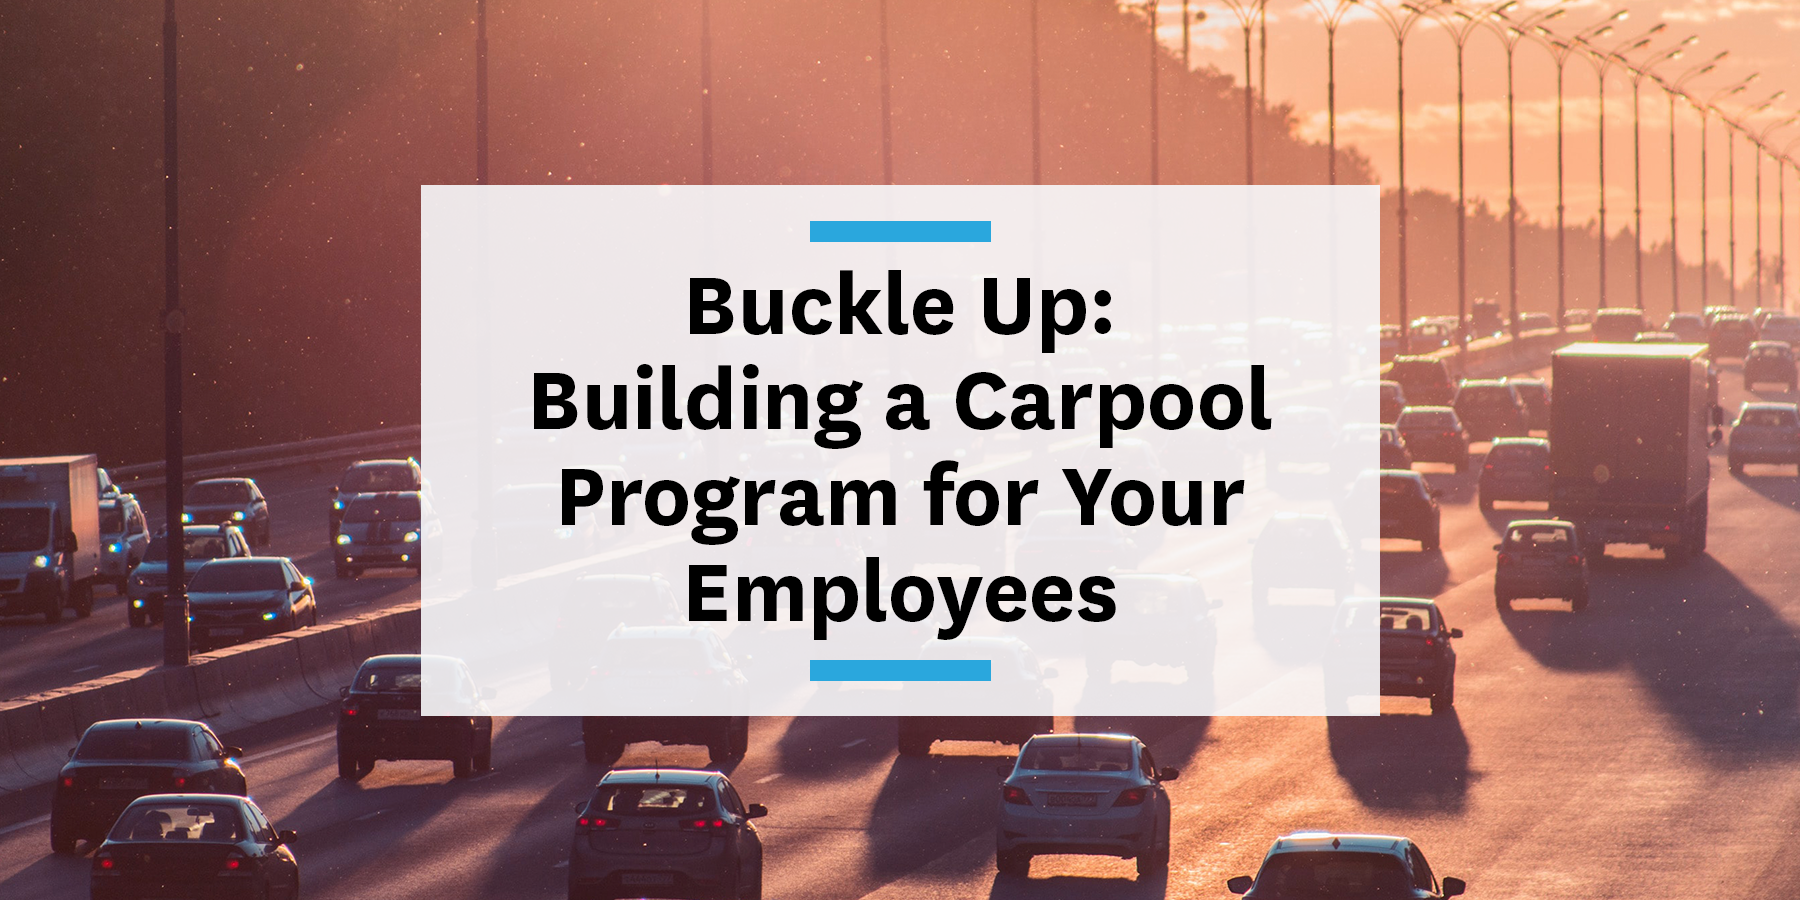 Building a carpool program for your employees and commute management strategy